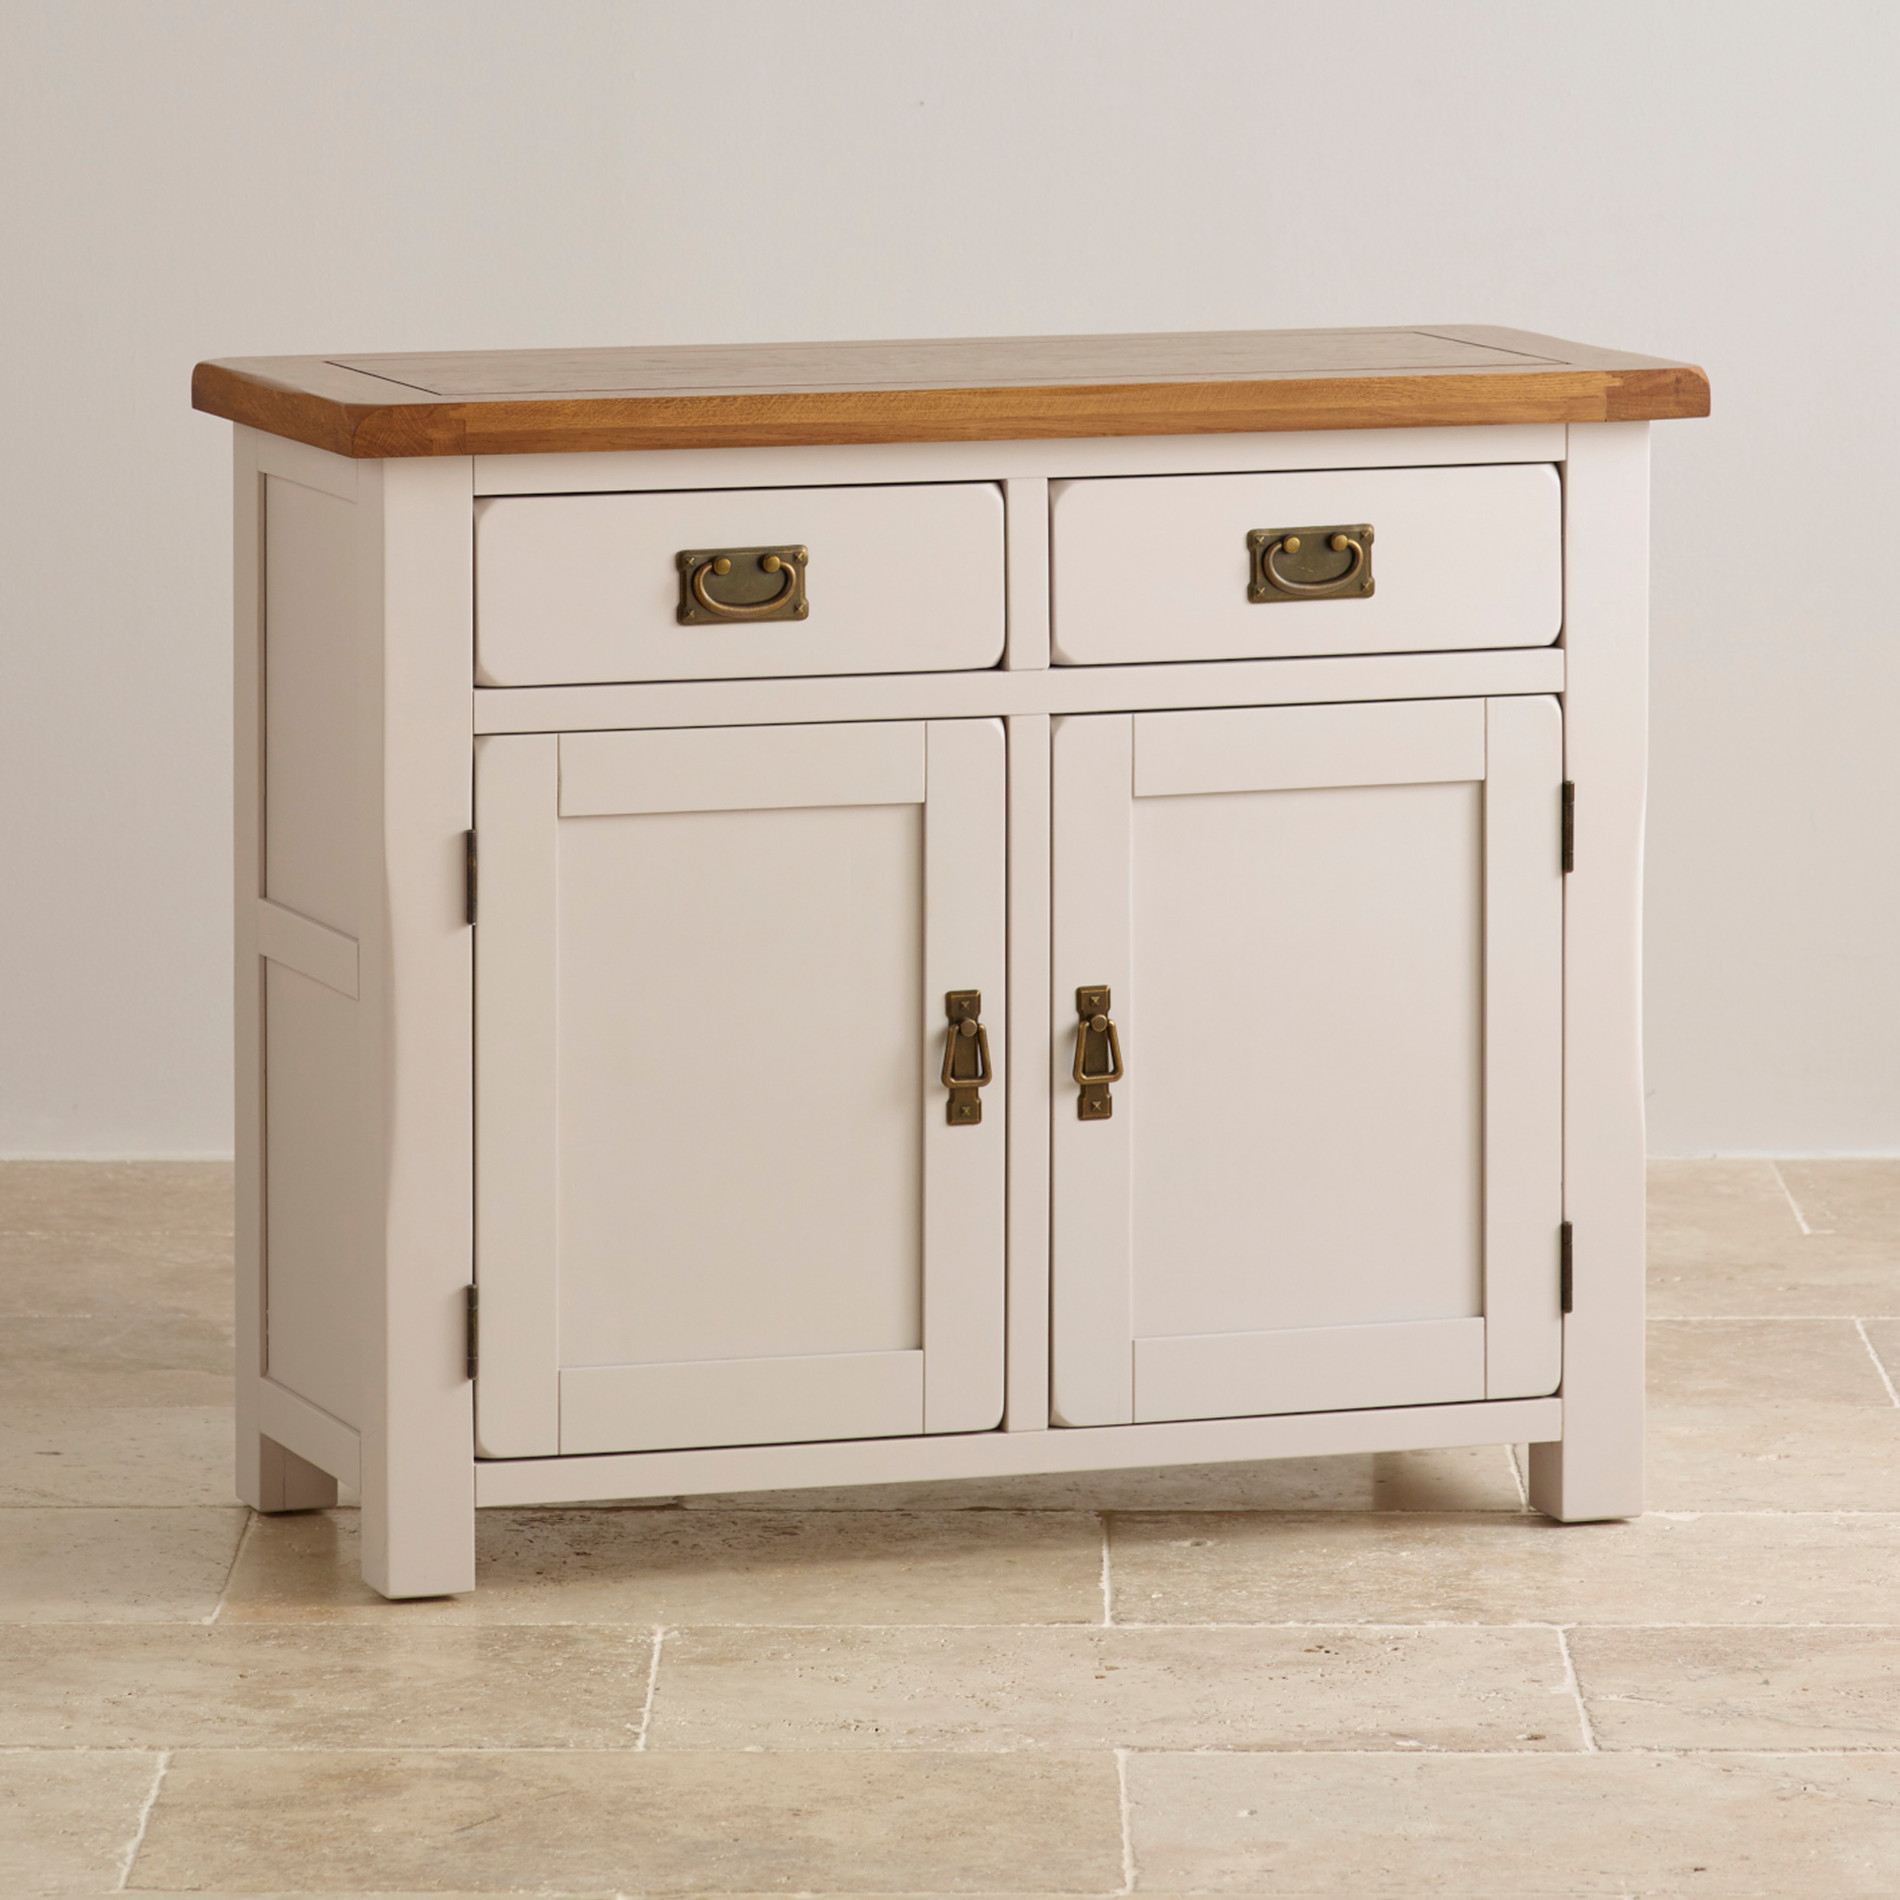 Kemble small painted sideboard in rustic solid oak for Painted buffet sideboard